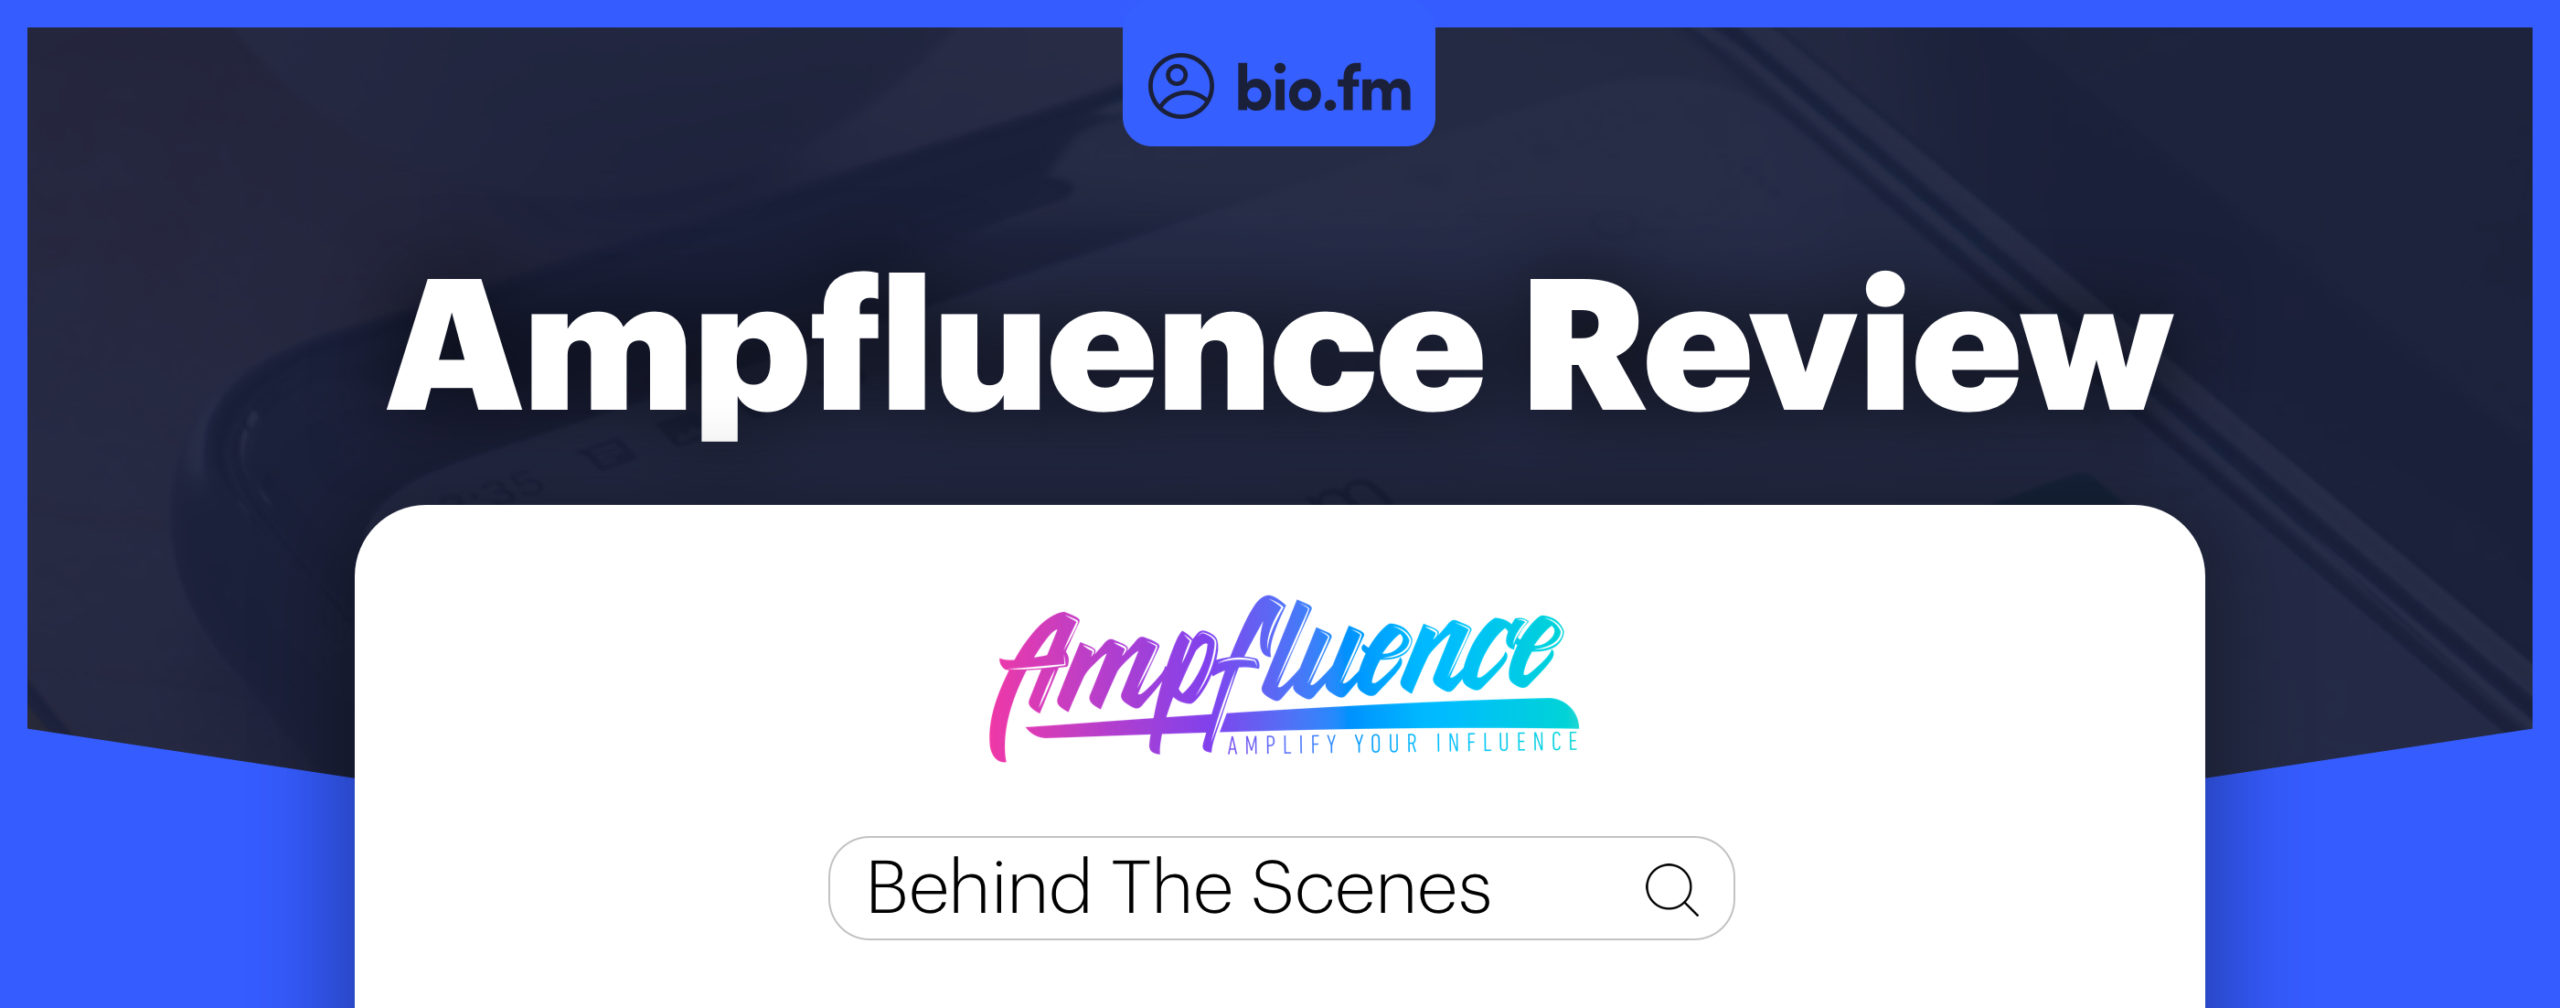 amfluence review featured image